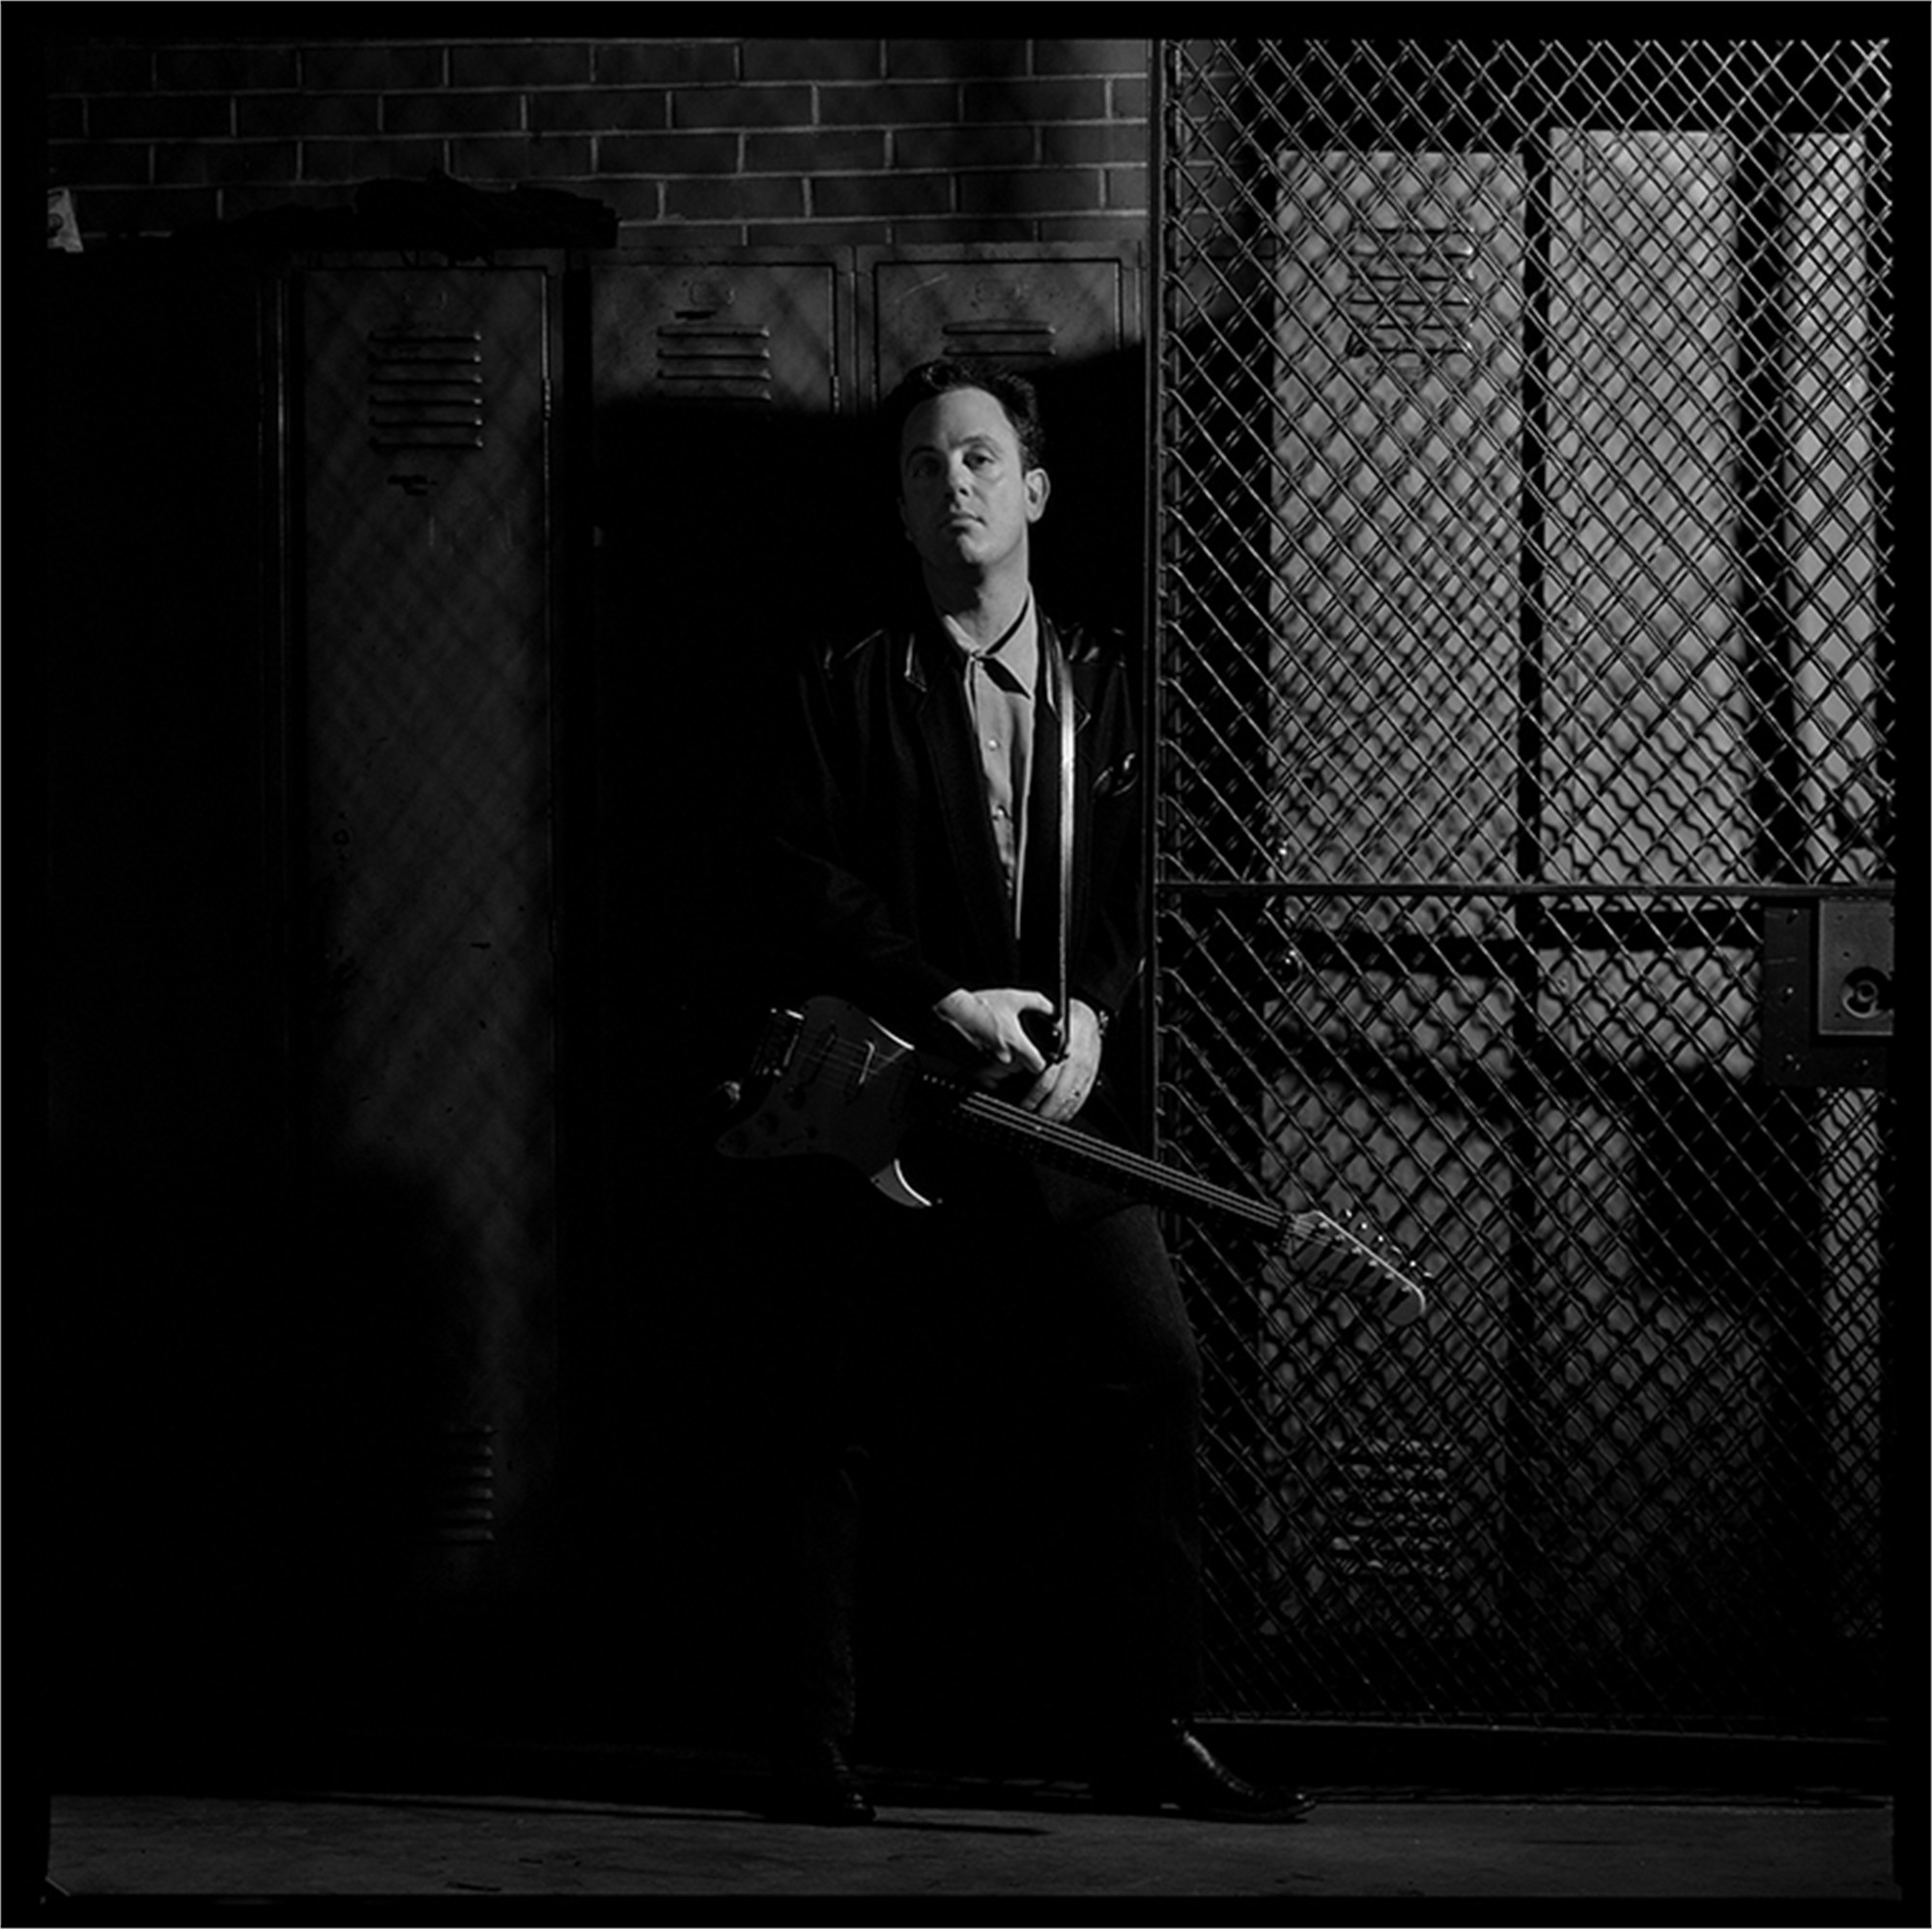 89196 Billy Joel Locker Room BW by Timothy White